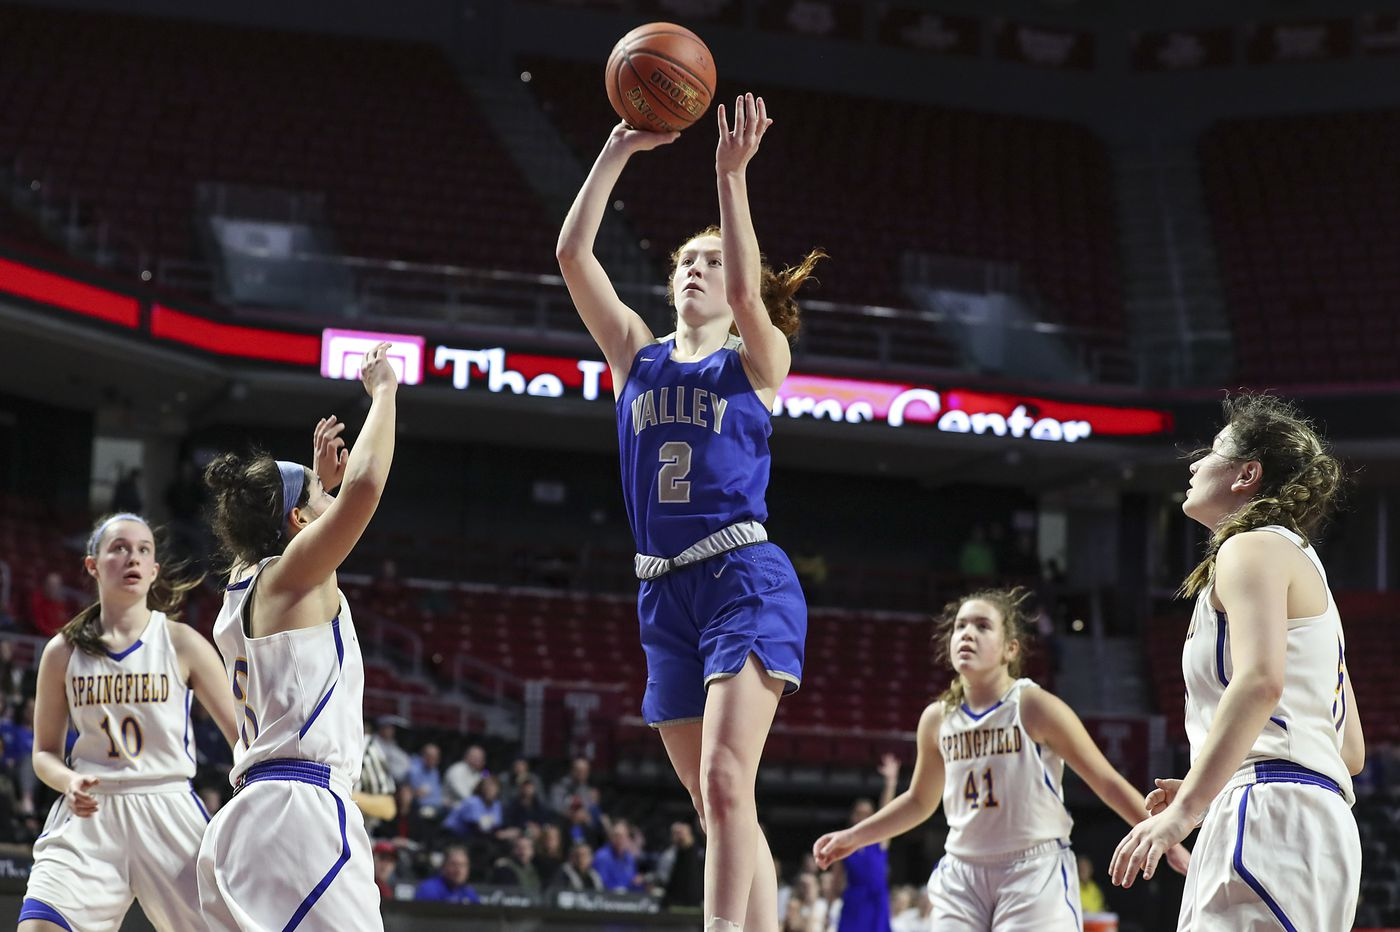 Great Valley's run continues with Tessa Liberatoscioli's deciding free throw in PIAA Class 5A opening round